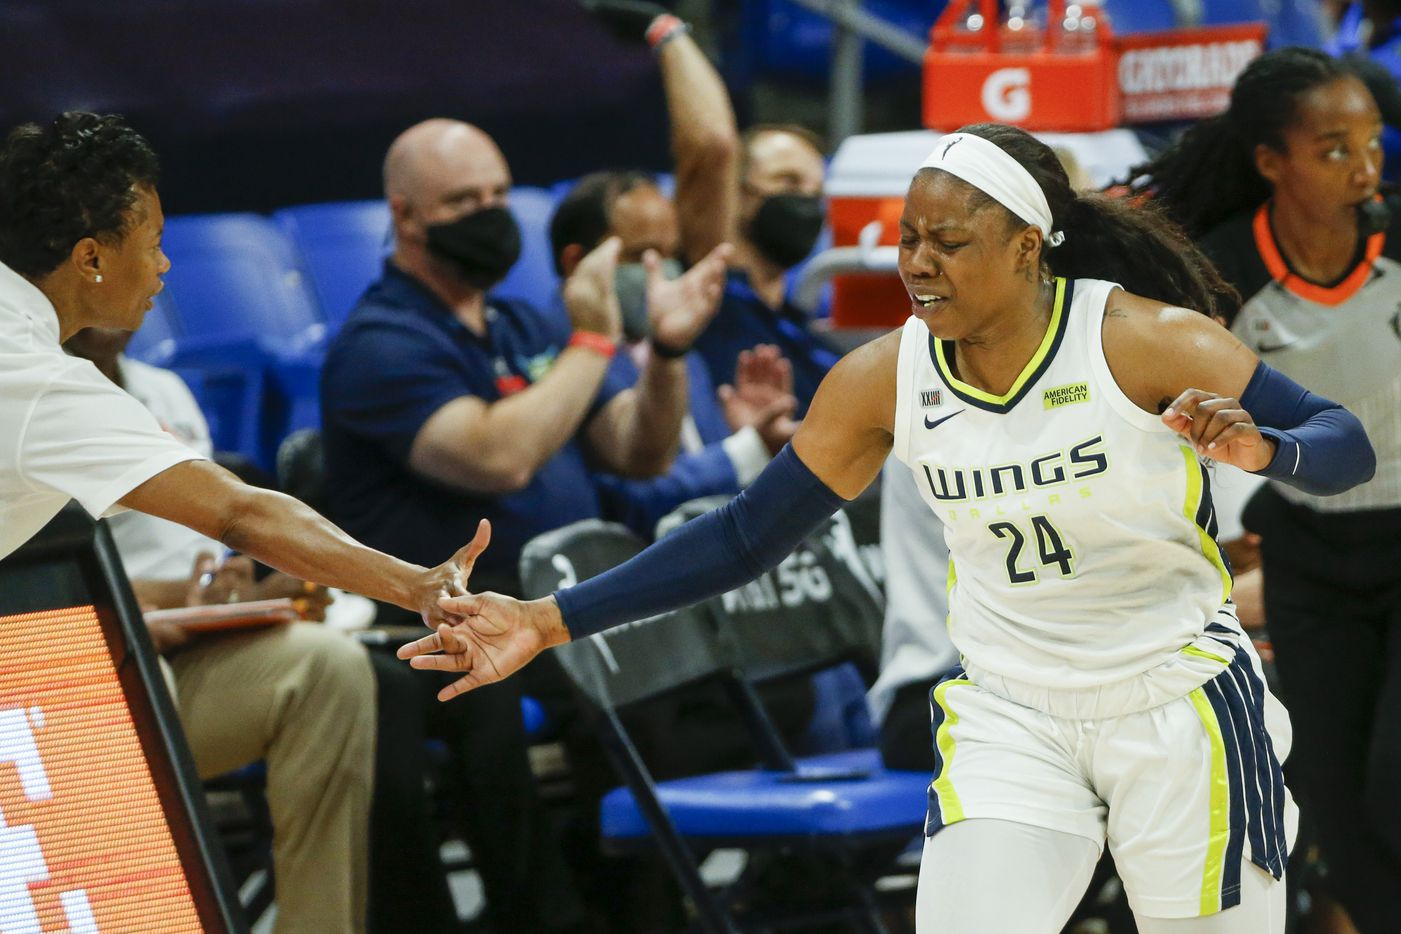 Dallas Wings guard Arike Ogunbowale (24) celebrates a three-point shot with head coach Vickie Johnson during the first quarter against the Washington Mystics at College Park Center on Saturday, June 26, 2021, in Arlington. (Elias Valverde II/The Dallas Morning News)